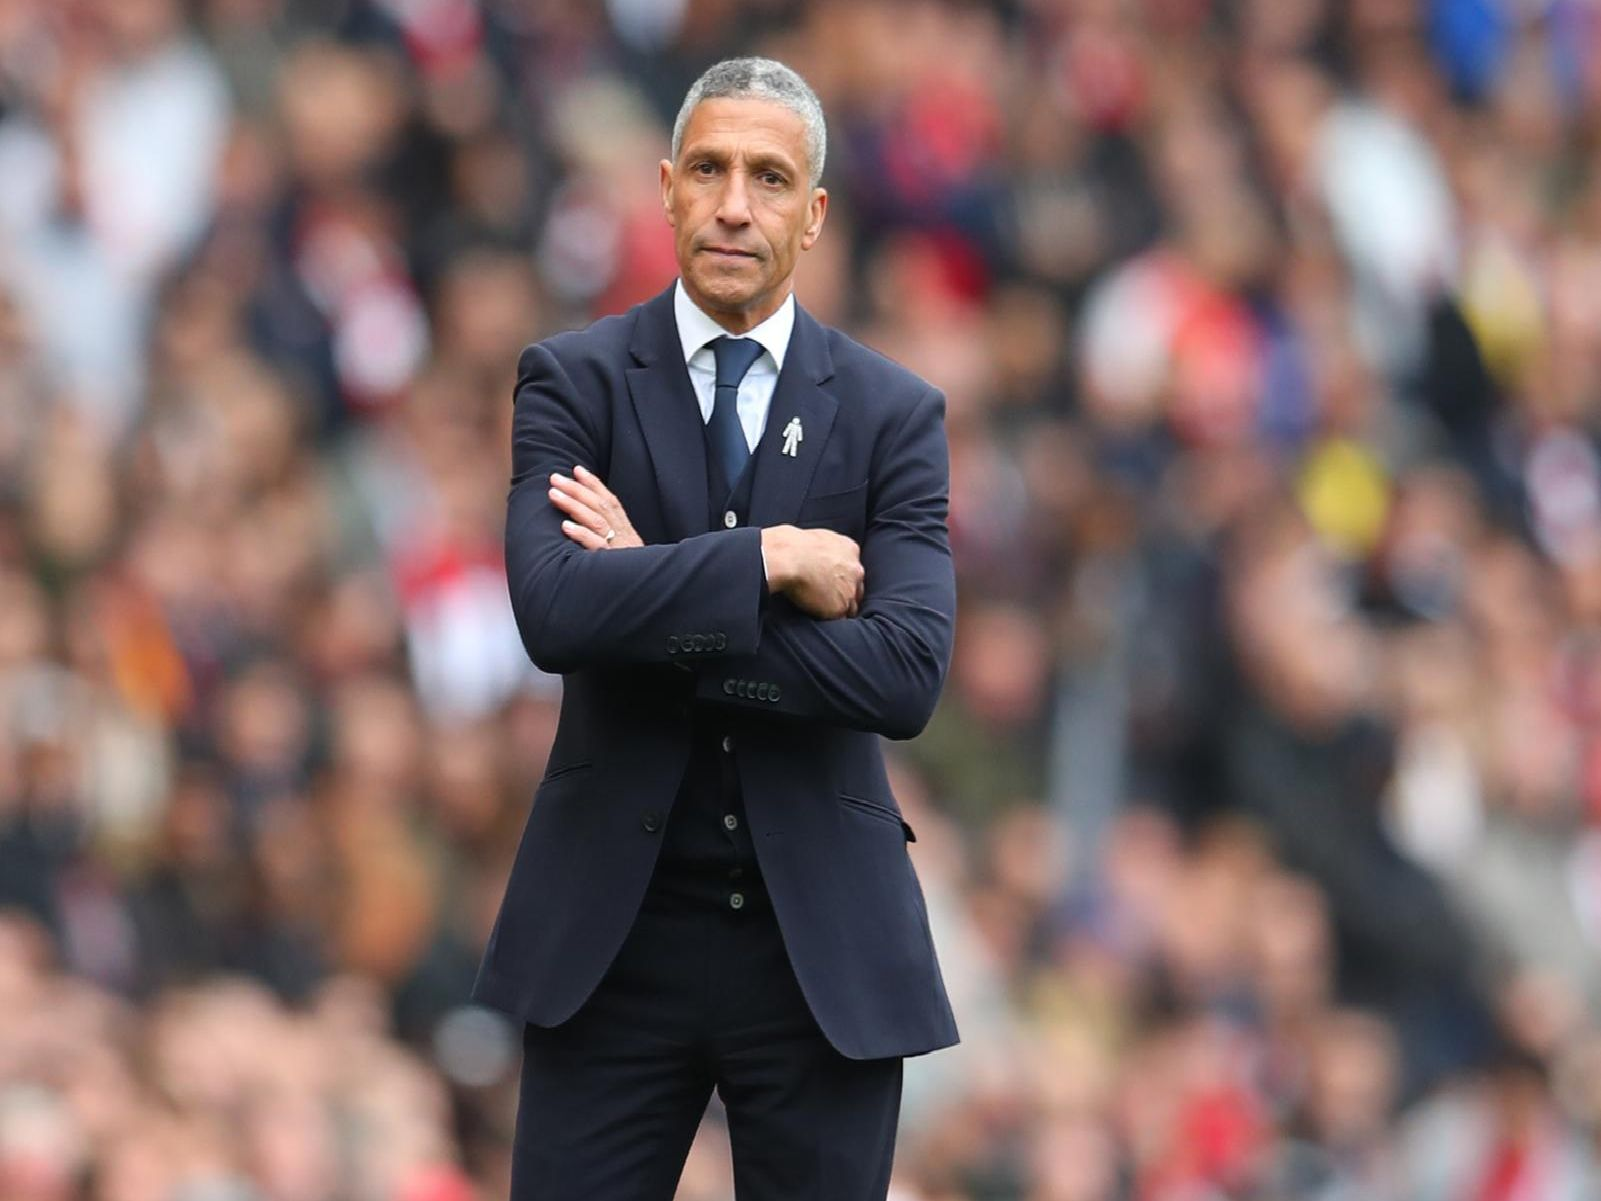 Chris Hughton's Brighton career in numbers.